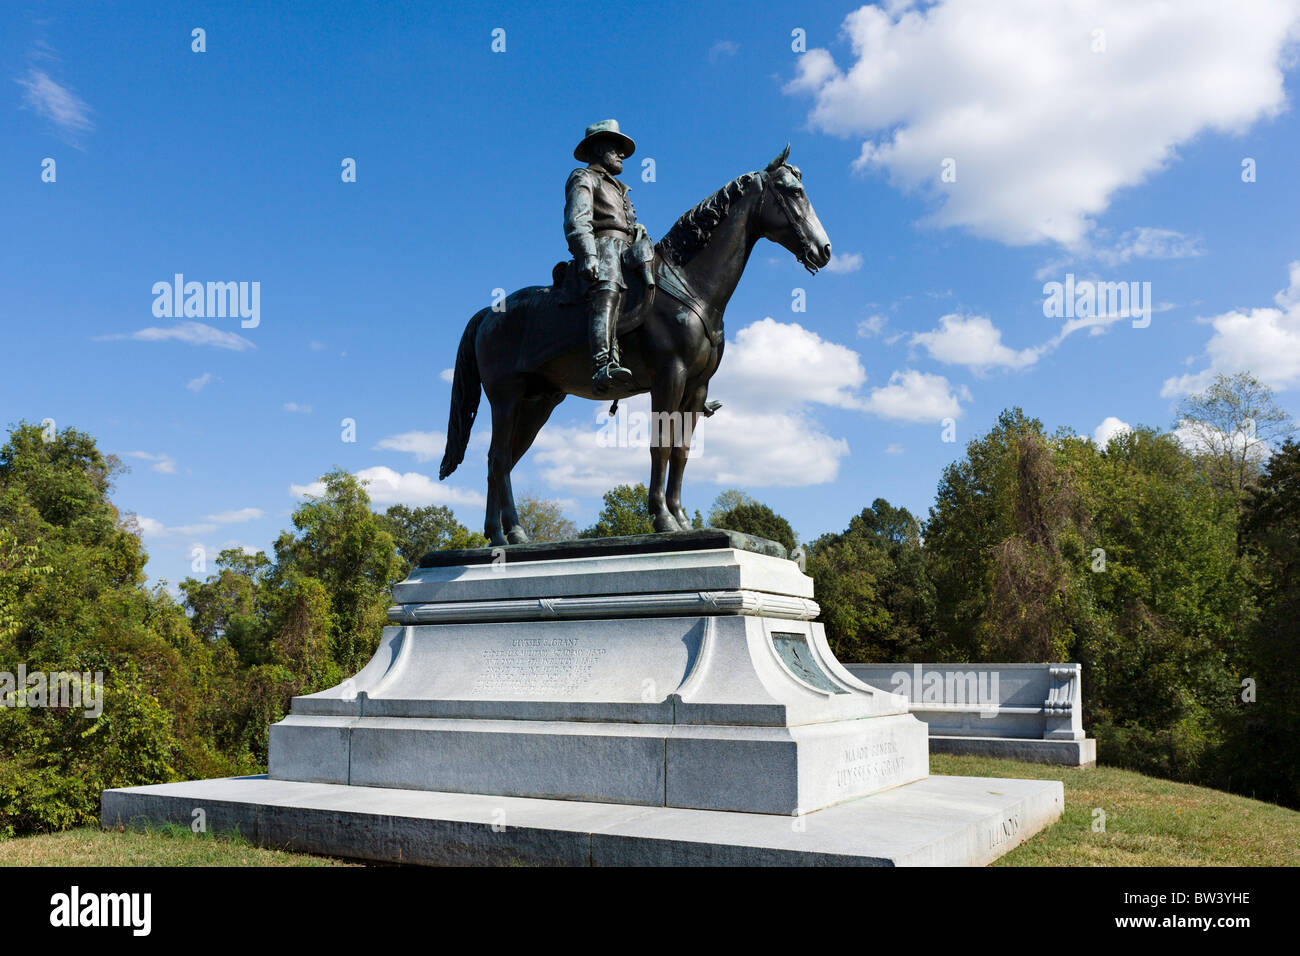 general grant headquarters stock photos general grant statue of general ulysses s grant on horseback grant s headquarters area vicksburg national military